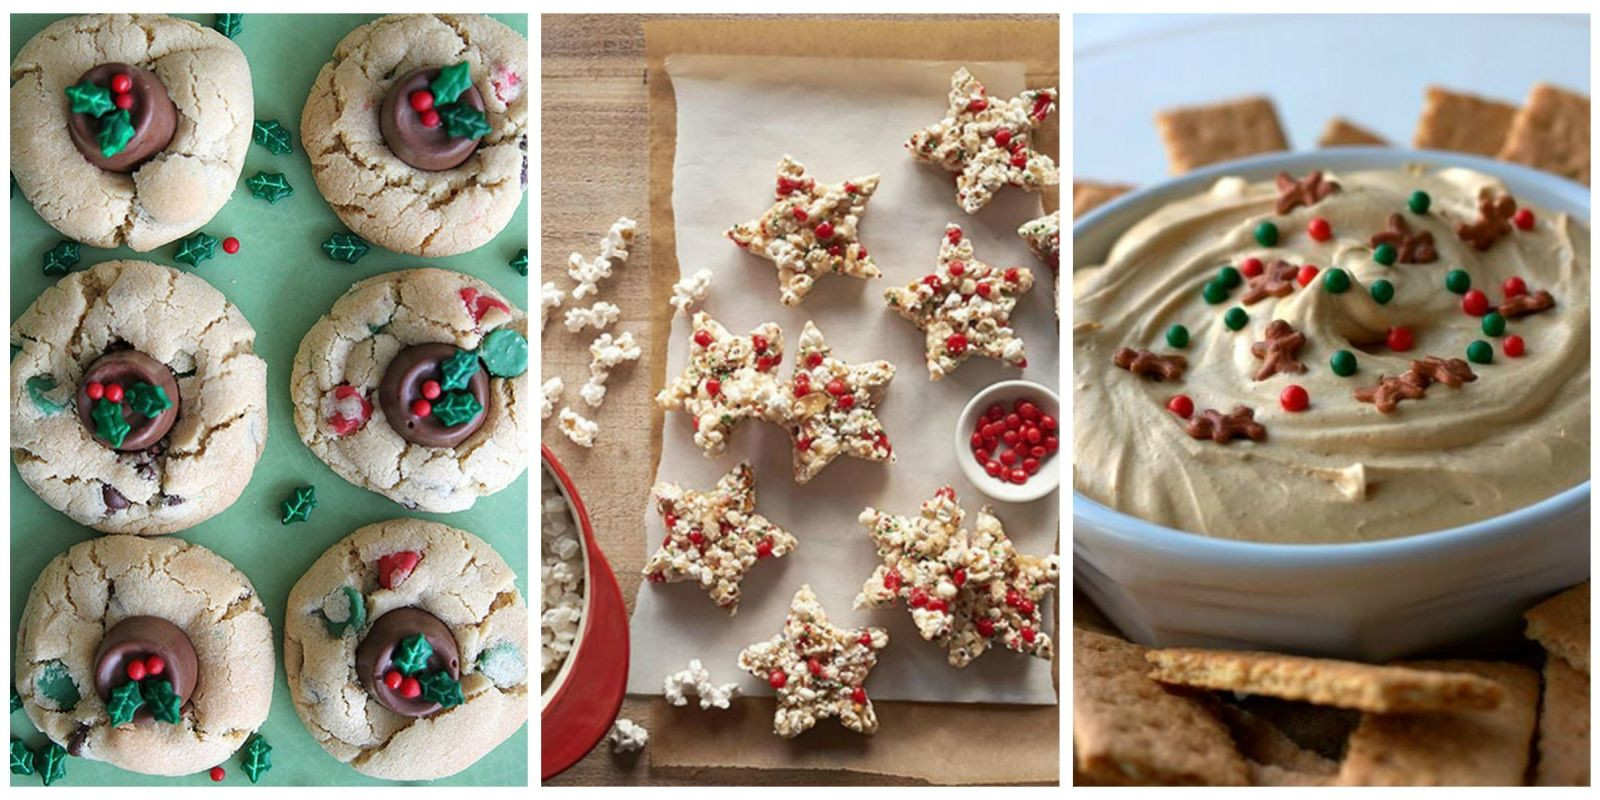 Desserts To Make For Christmas  40 Easy Christmas Desserts Best Recipes and Ideas for